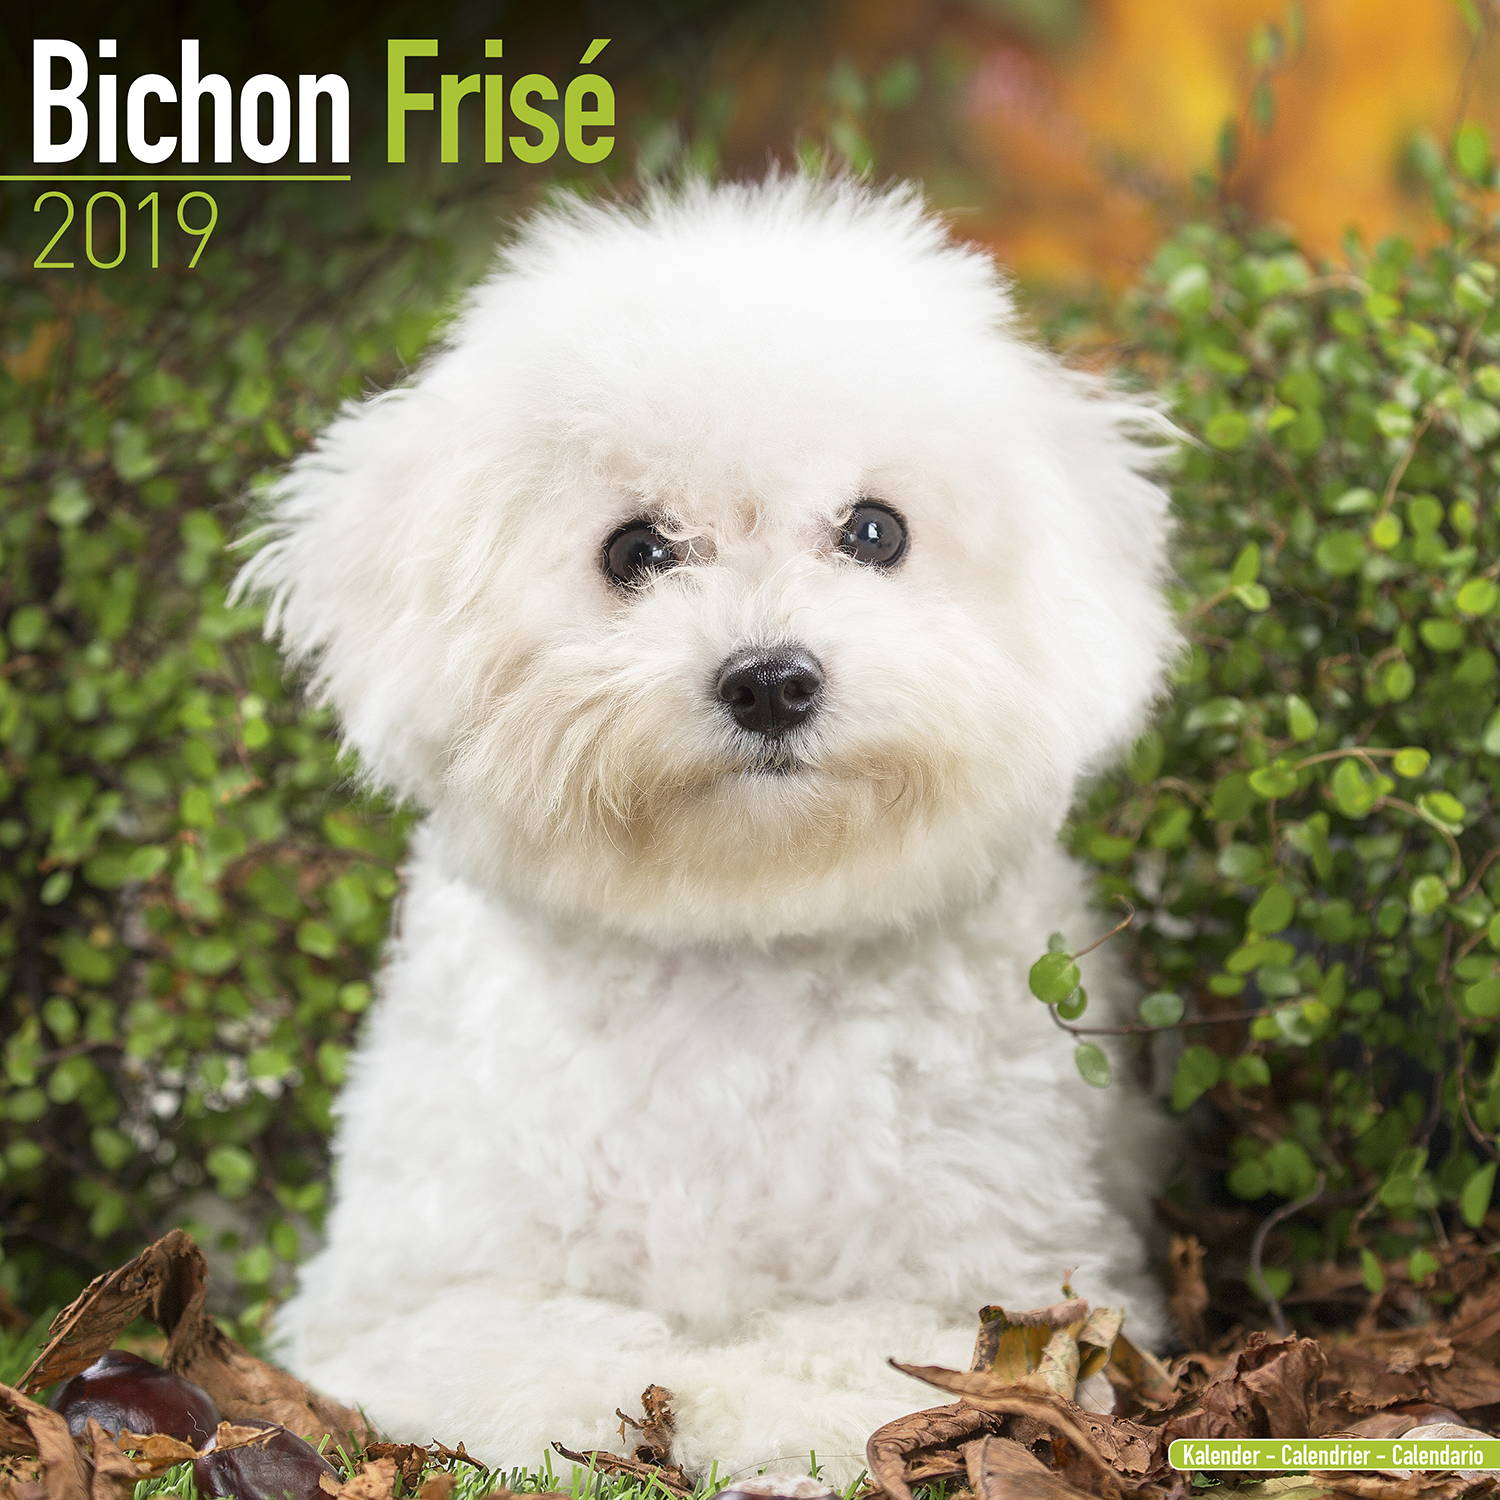 Dog Breeds Similar To Bichon Frise